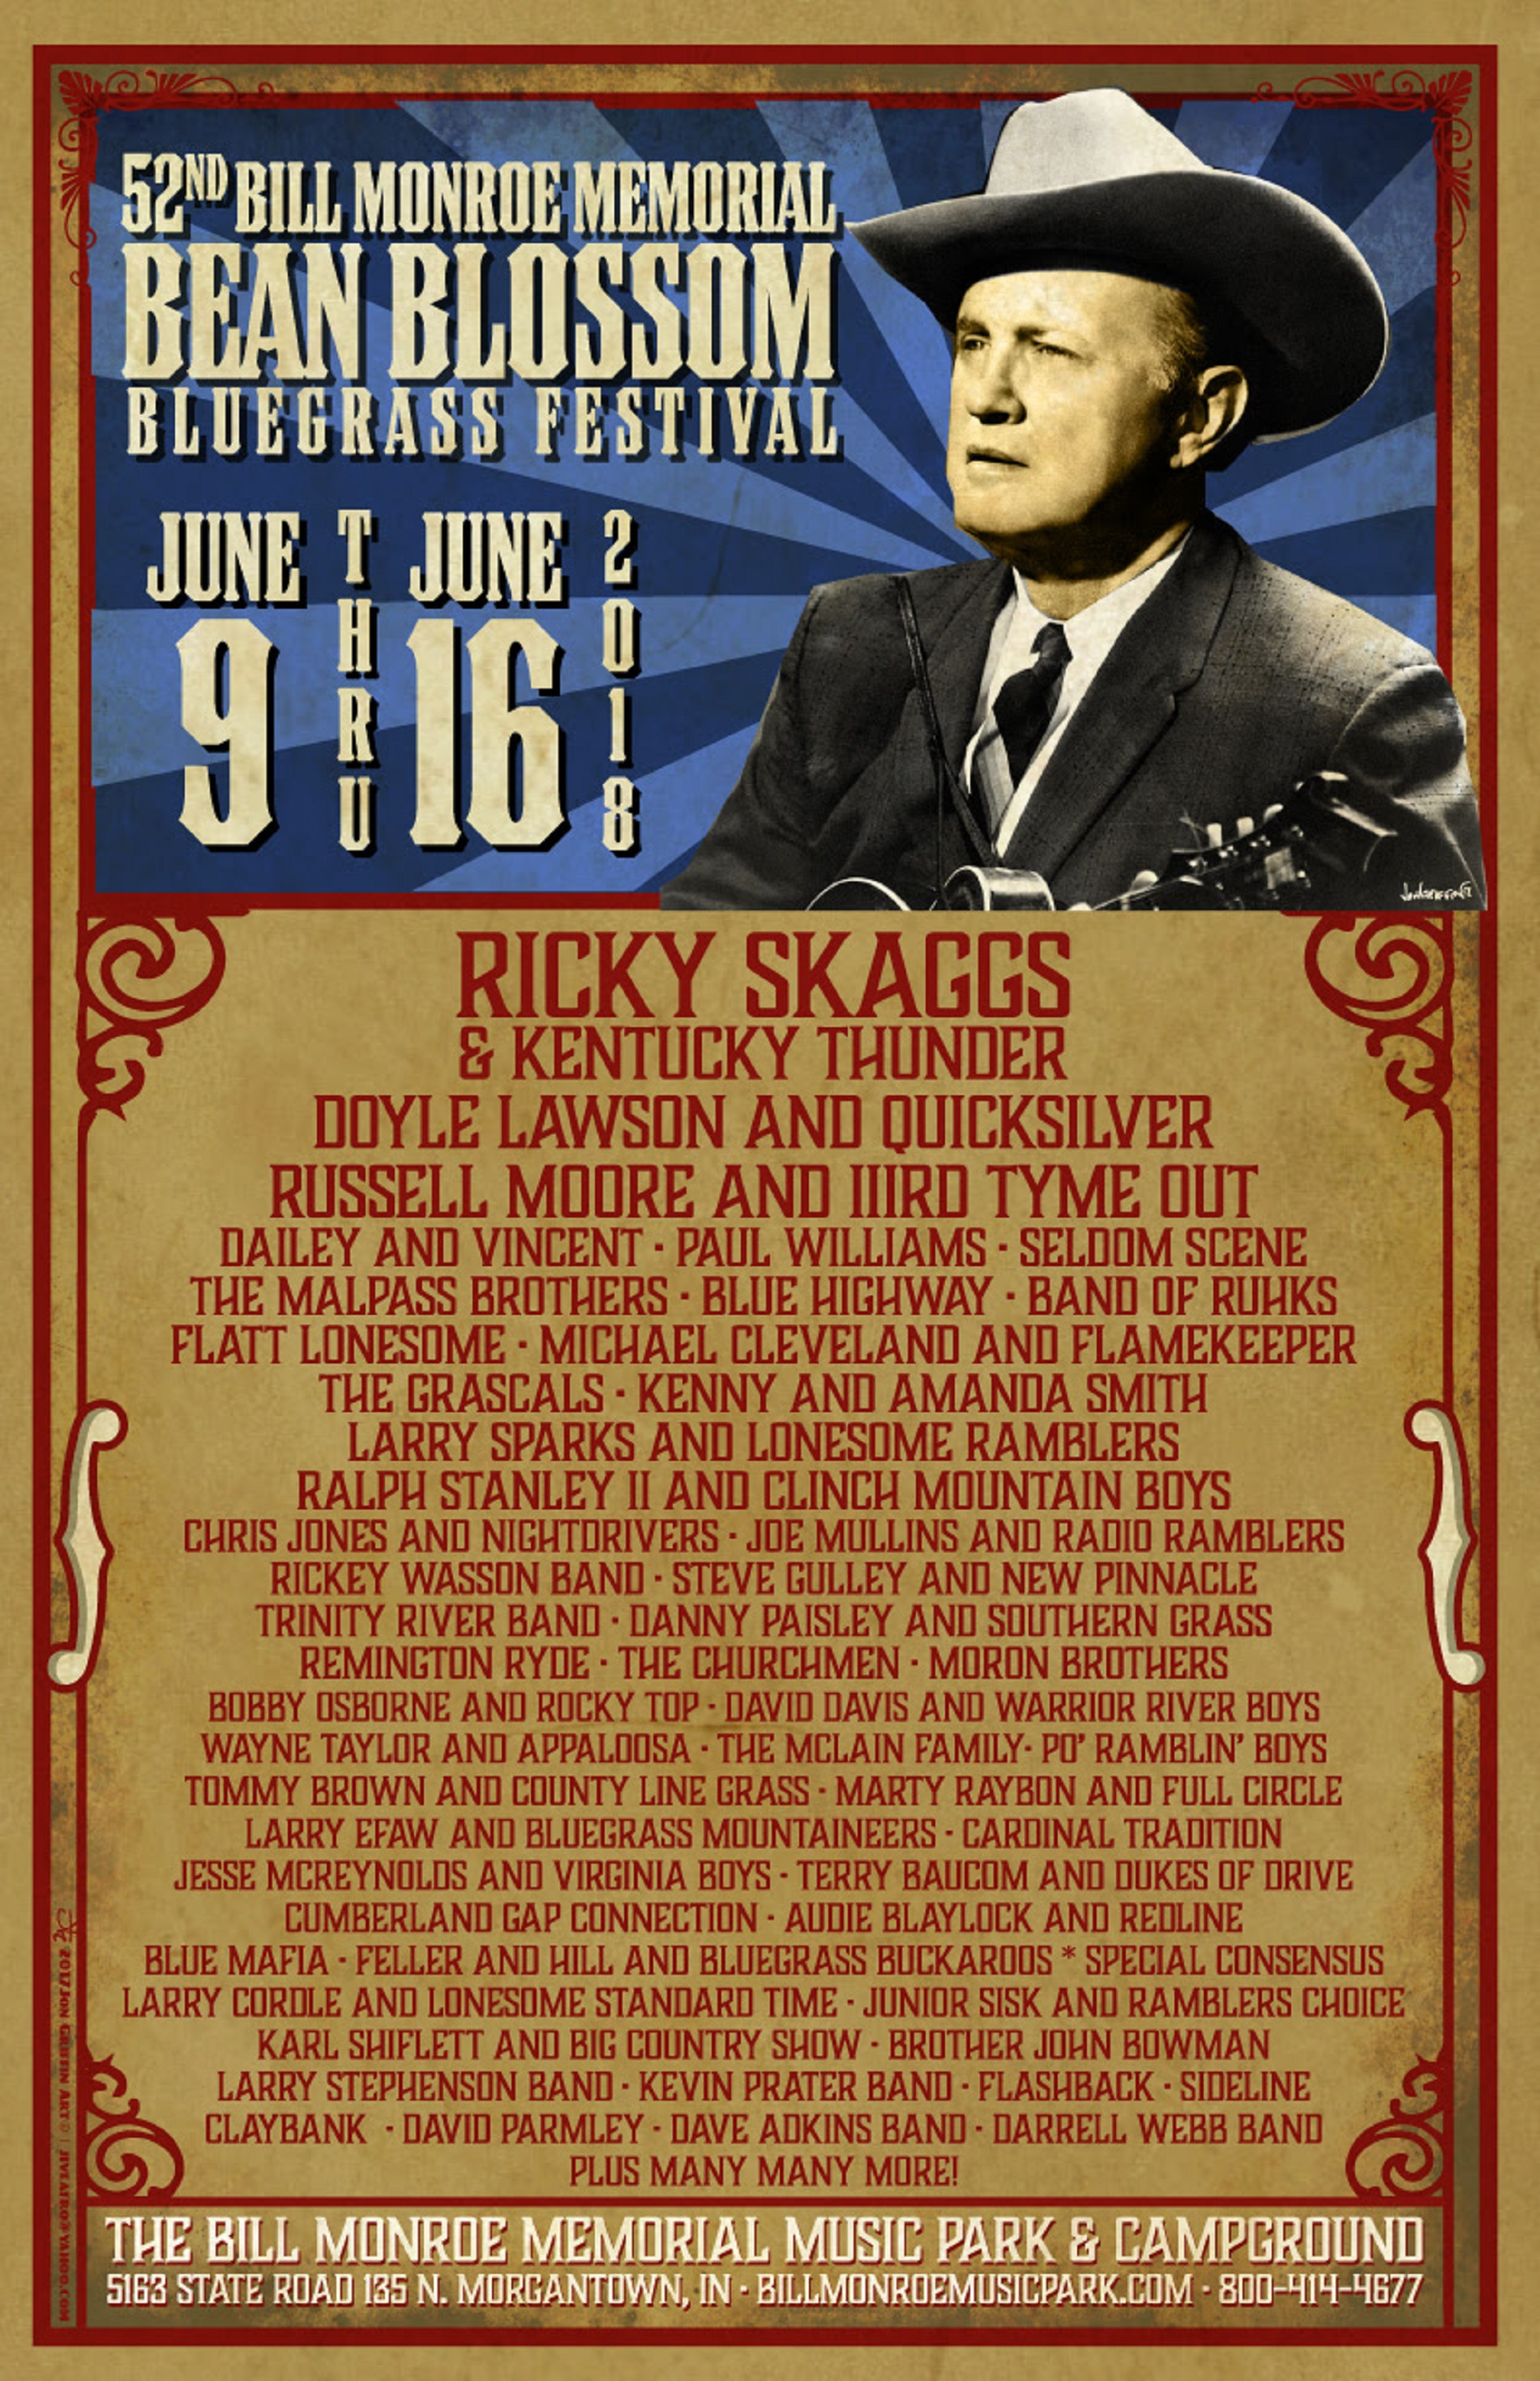 Bean Blossom Line-Up Includes Ricky Skaggs, Asleep at the Wheel & more!